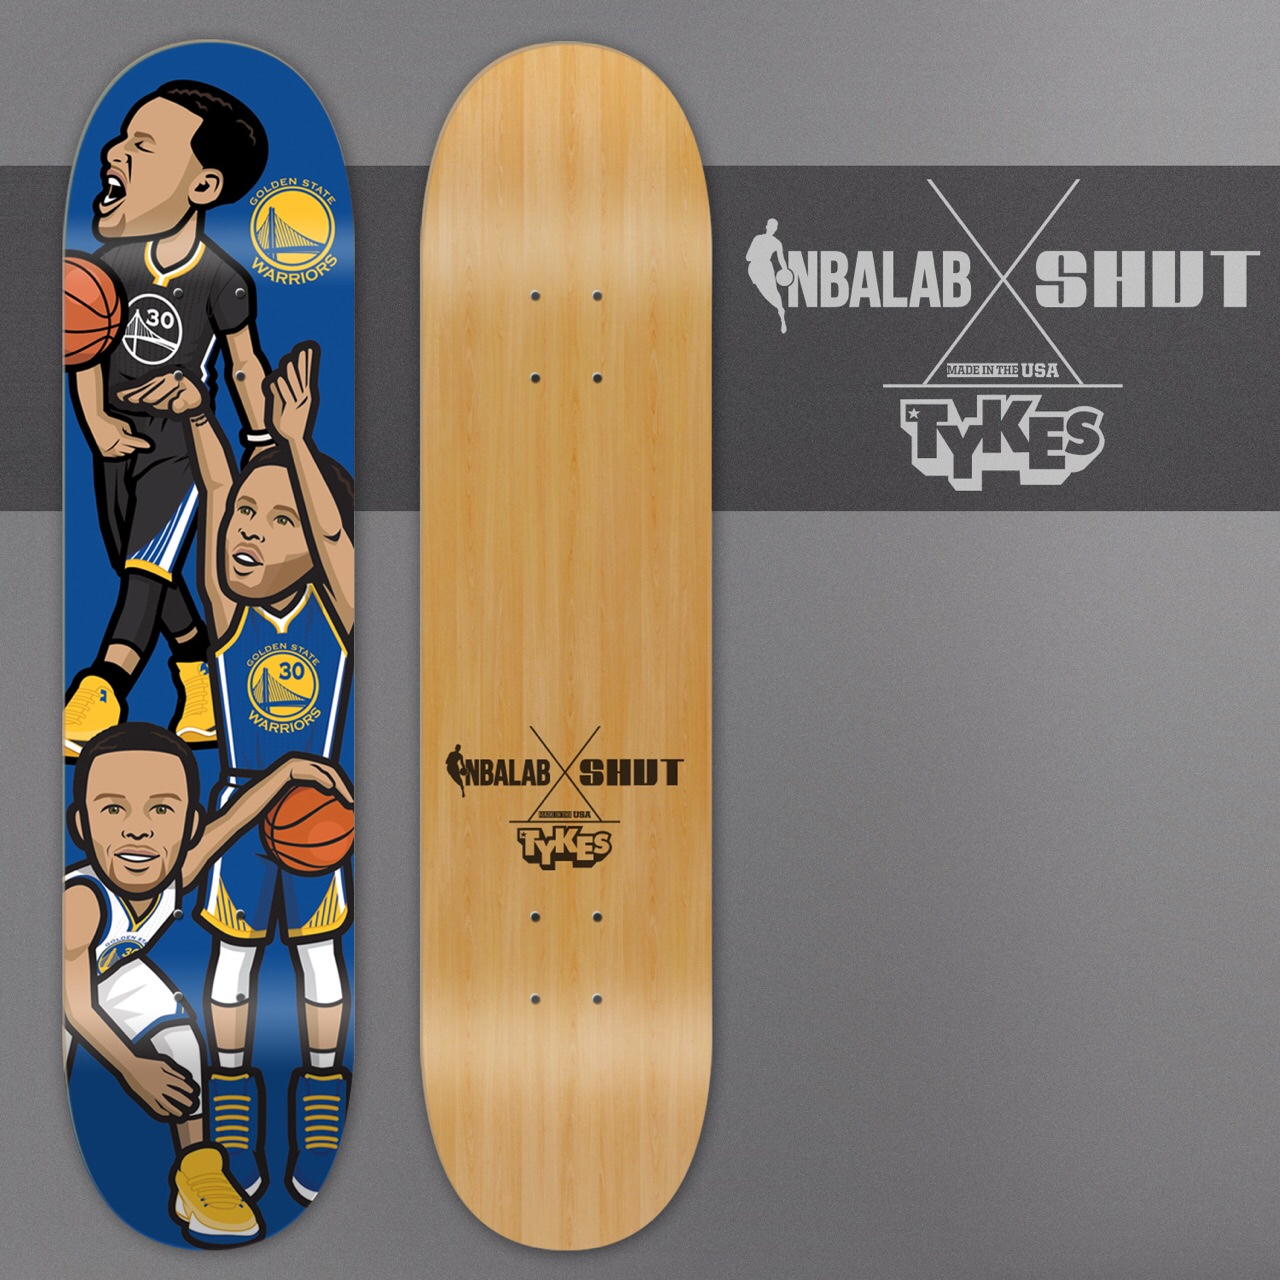 NBA LAB/SHUT SKATEBOARDS   Social media artwork became a series of official NBA skateboard decks, which were promoted via a social media campaign partnership.